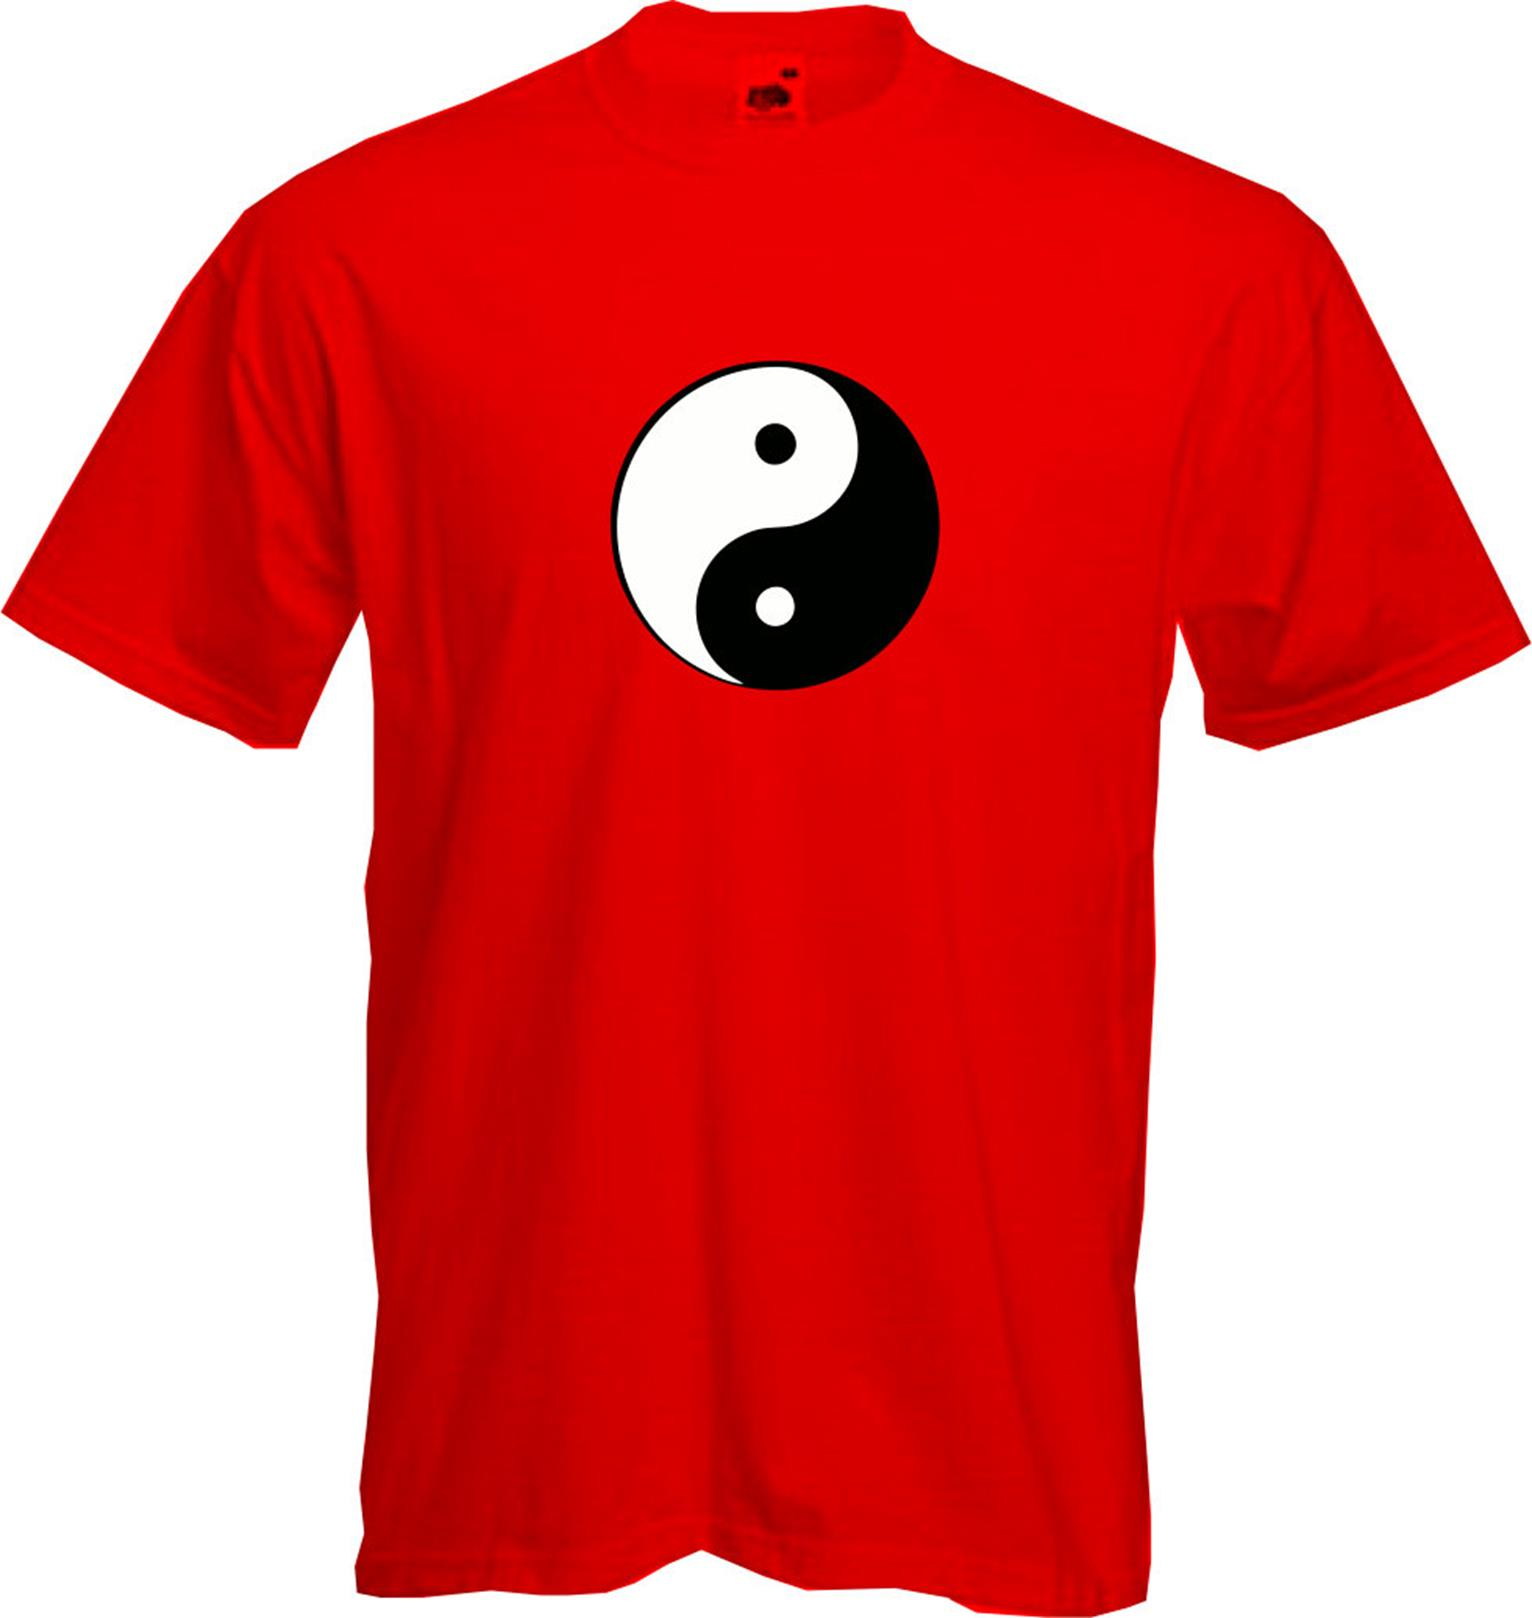 YIN YANG T Shirt Chinese Dark Light Retro Opposite Fun Cool Quality NEW New T Shirts Funny Tops Tee New Unisex Funny in T Shirts from Men 39 s Clothing